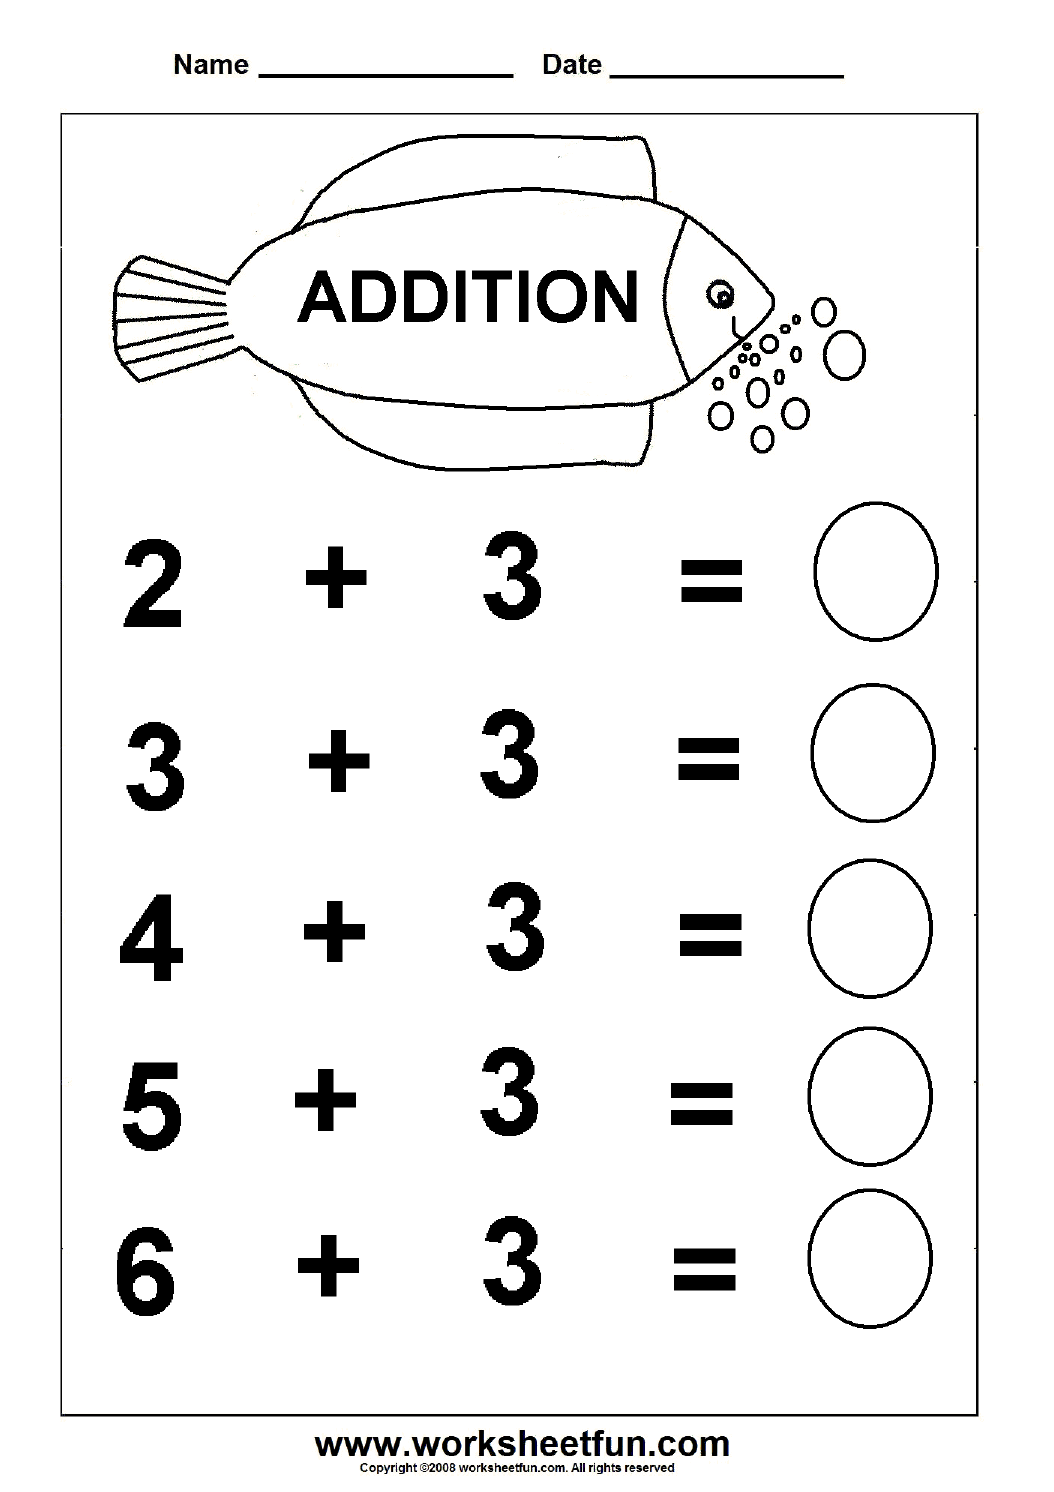 Worksheet Kinder Addition Worksheets beginner addition 6 kindergarten worksheets free first grade worksheets